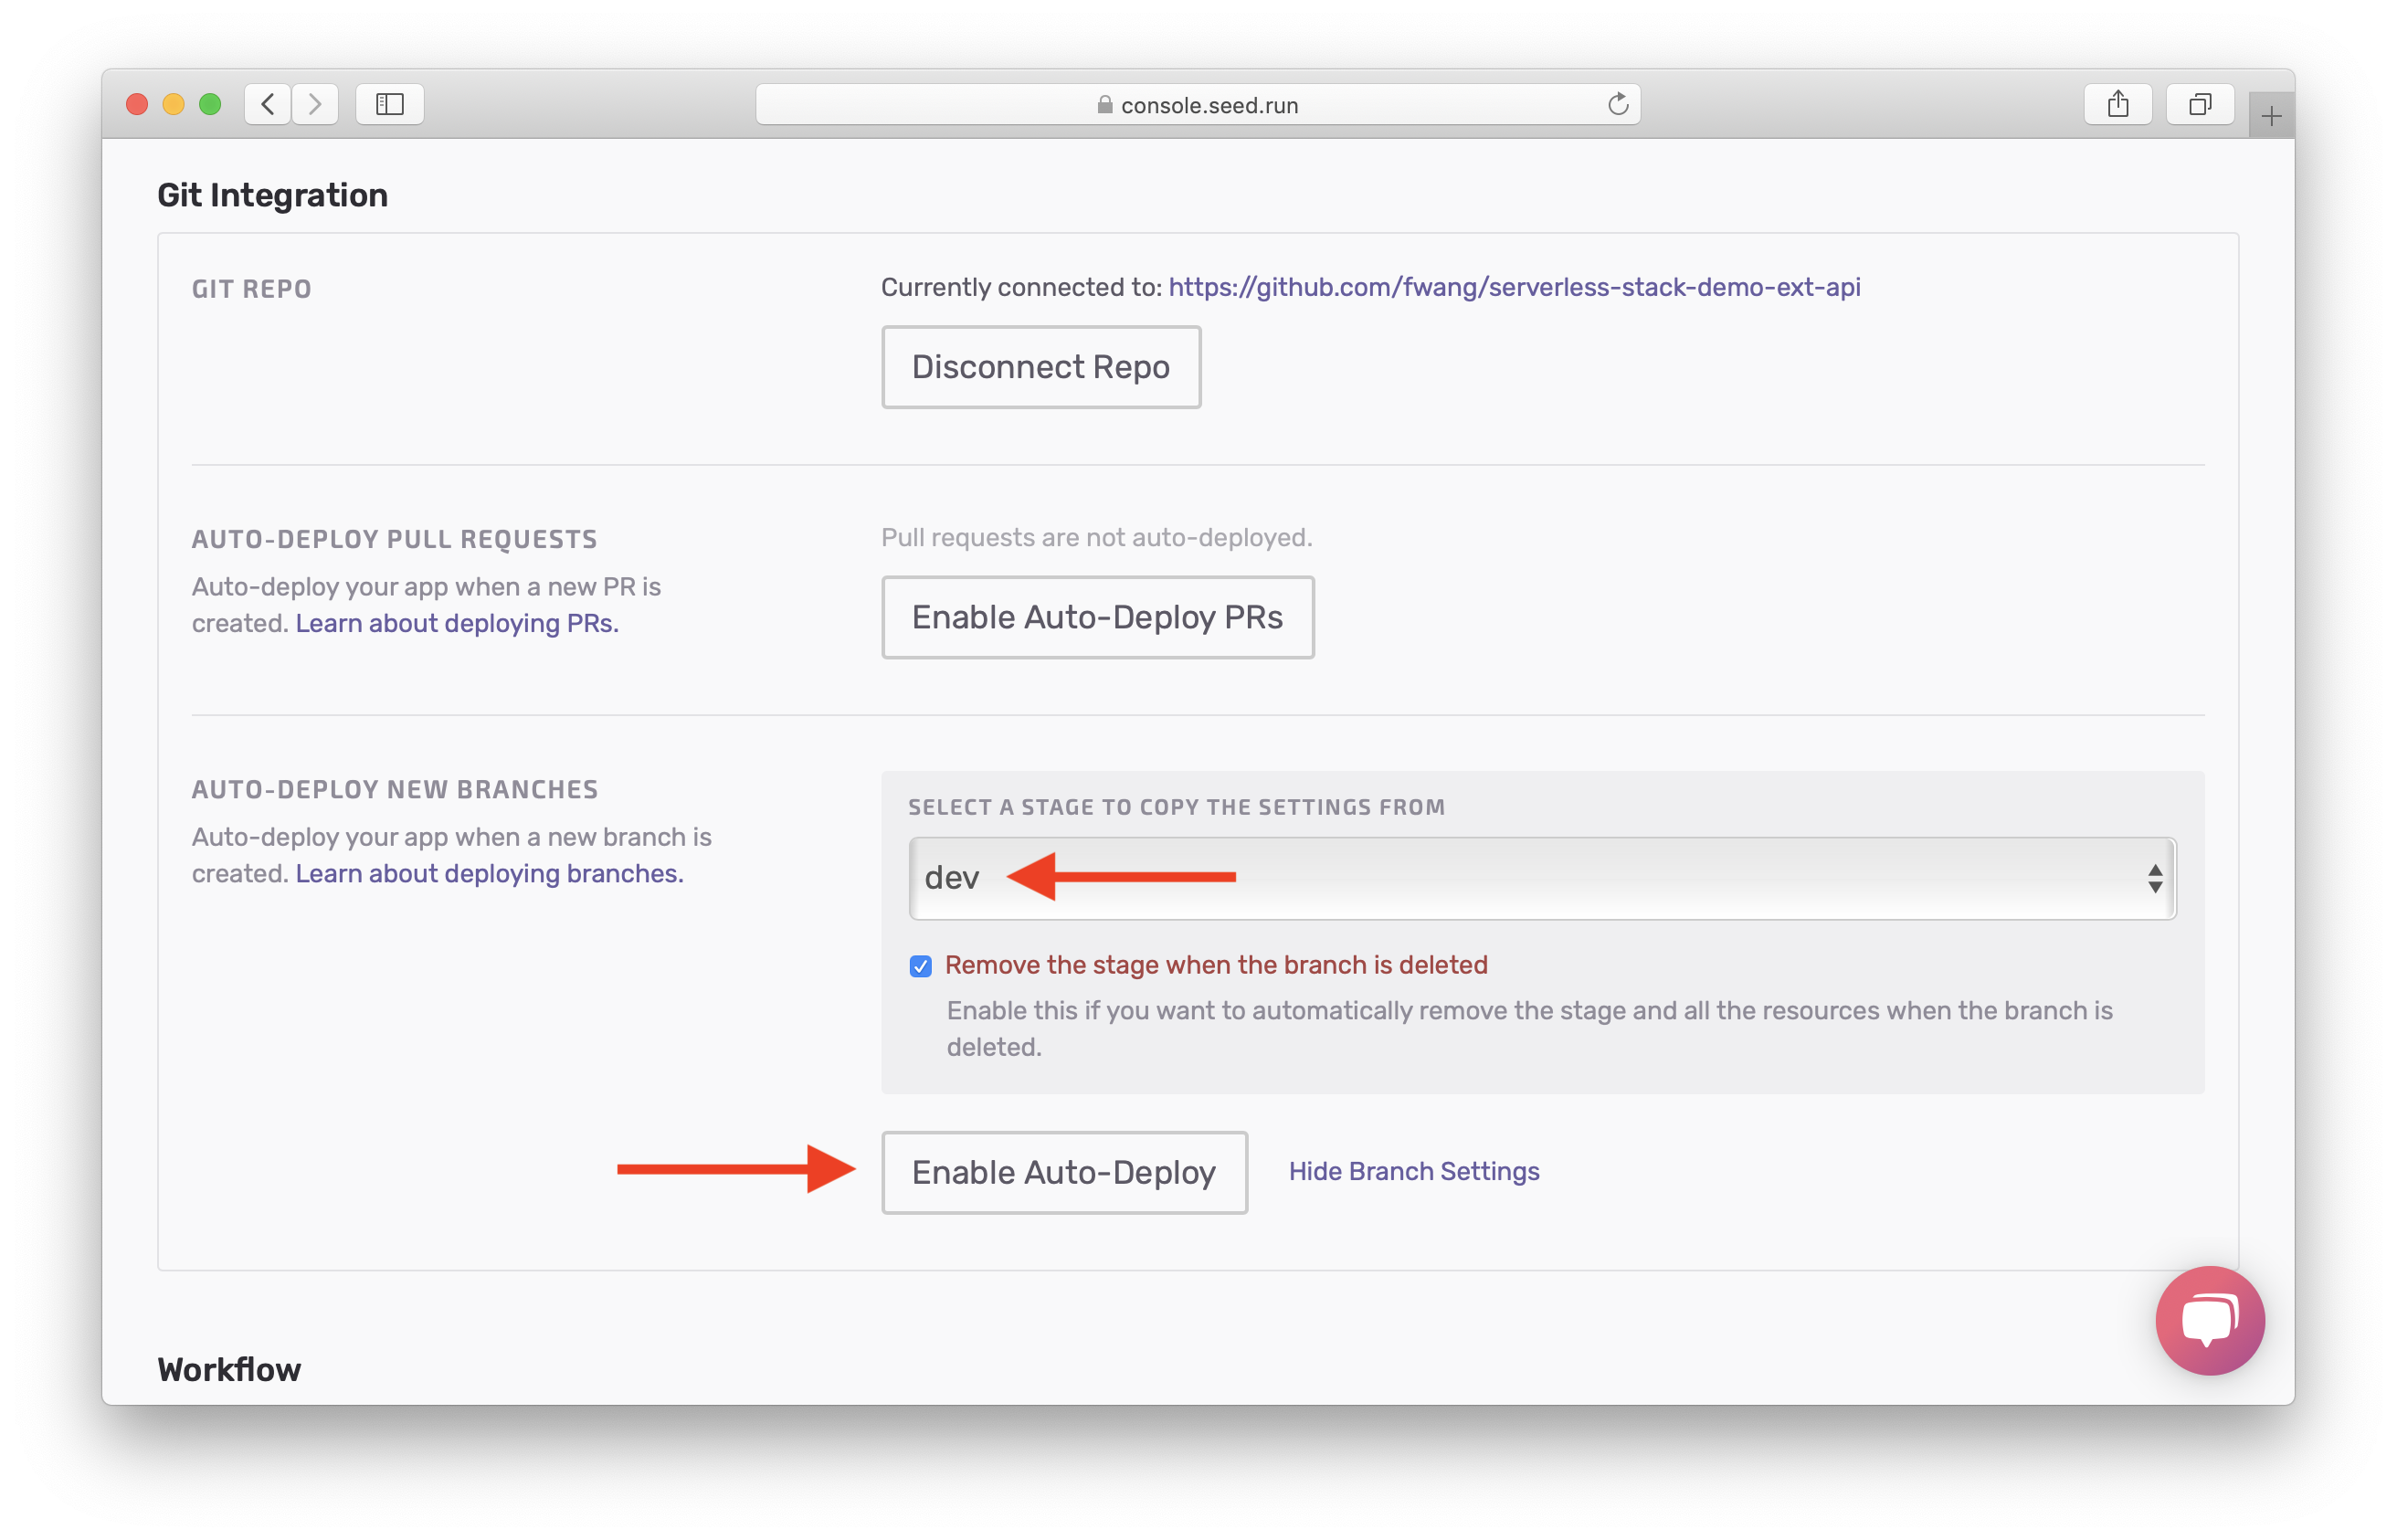 Select Enable Auto-Deploy